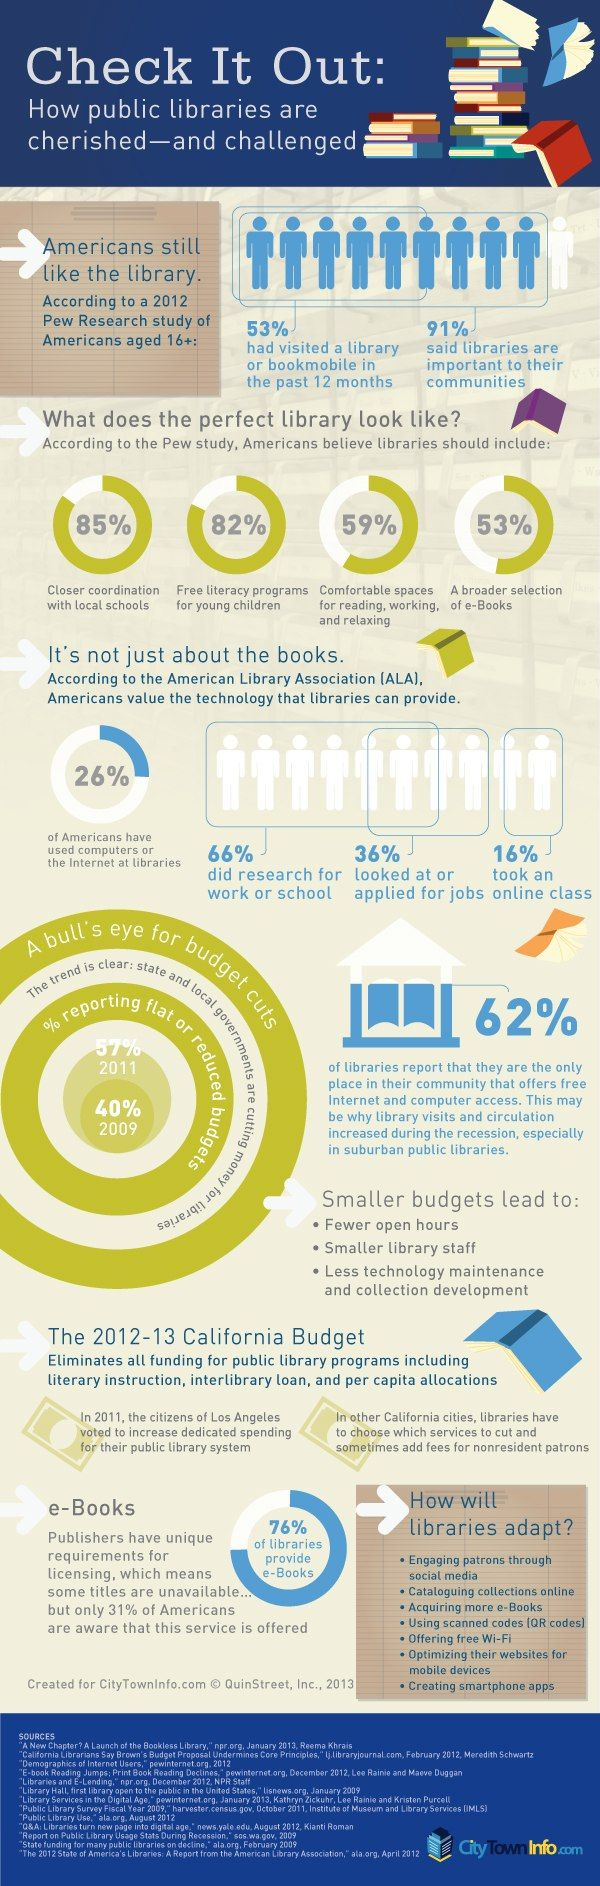 The public library: Historic artifact or adaptive success